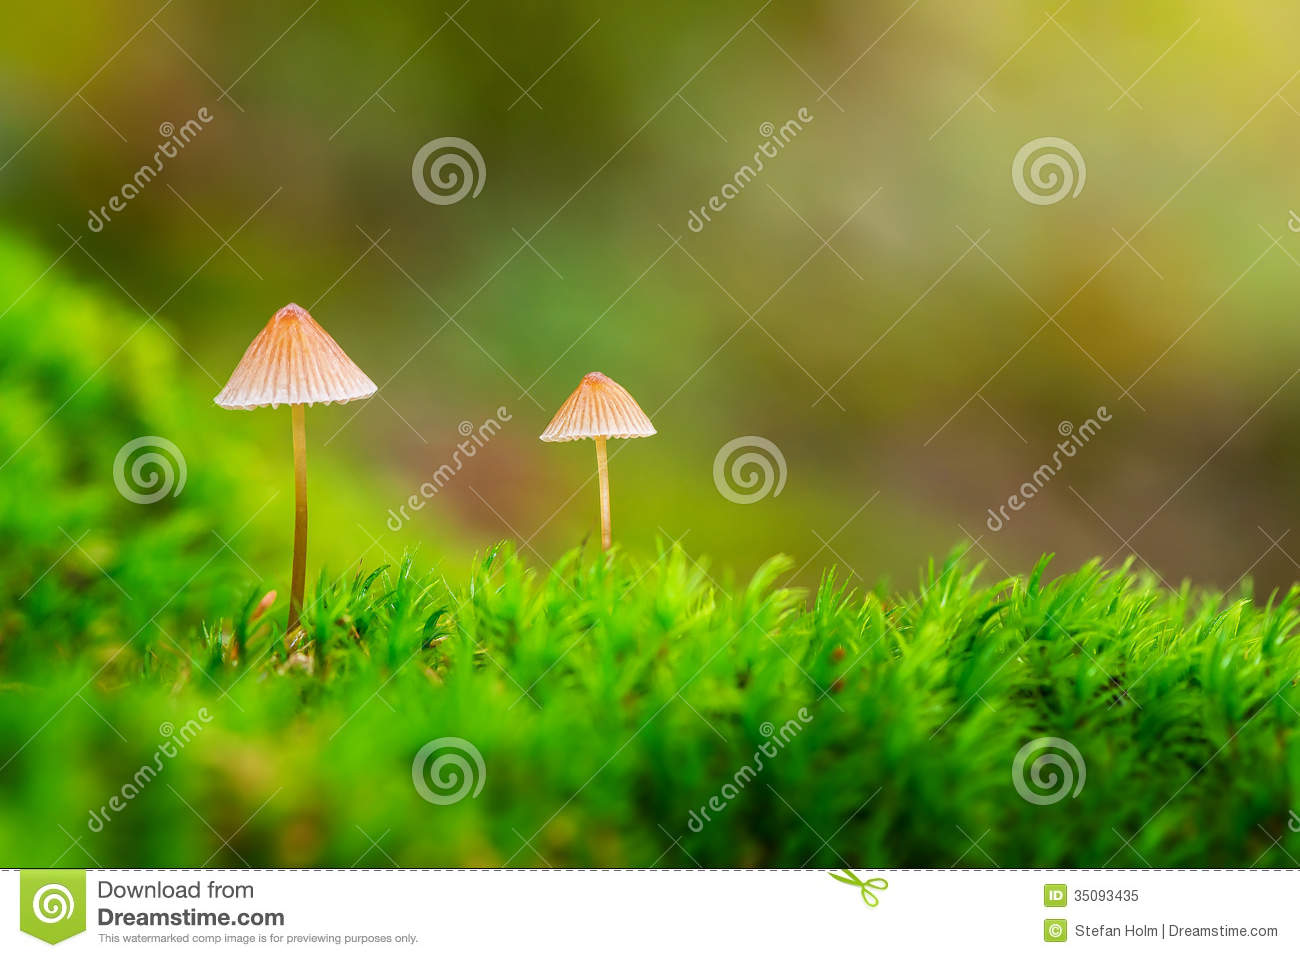 Two small mushrooms in green moss